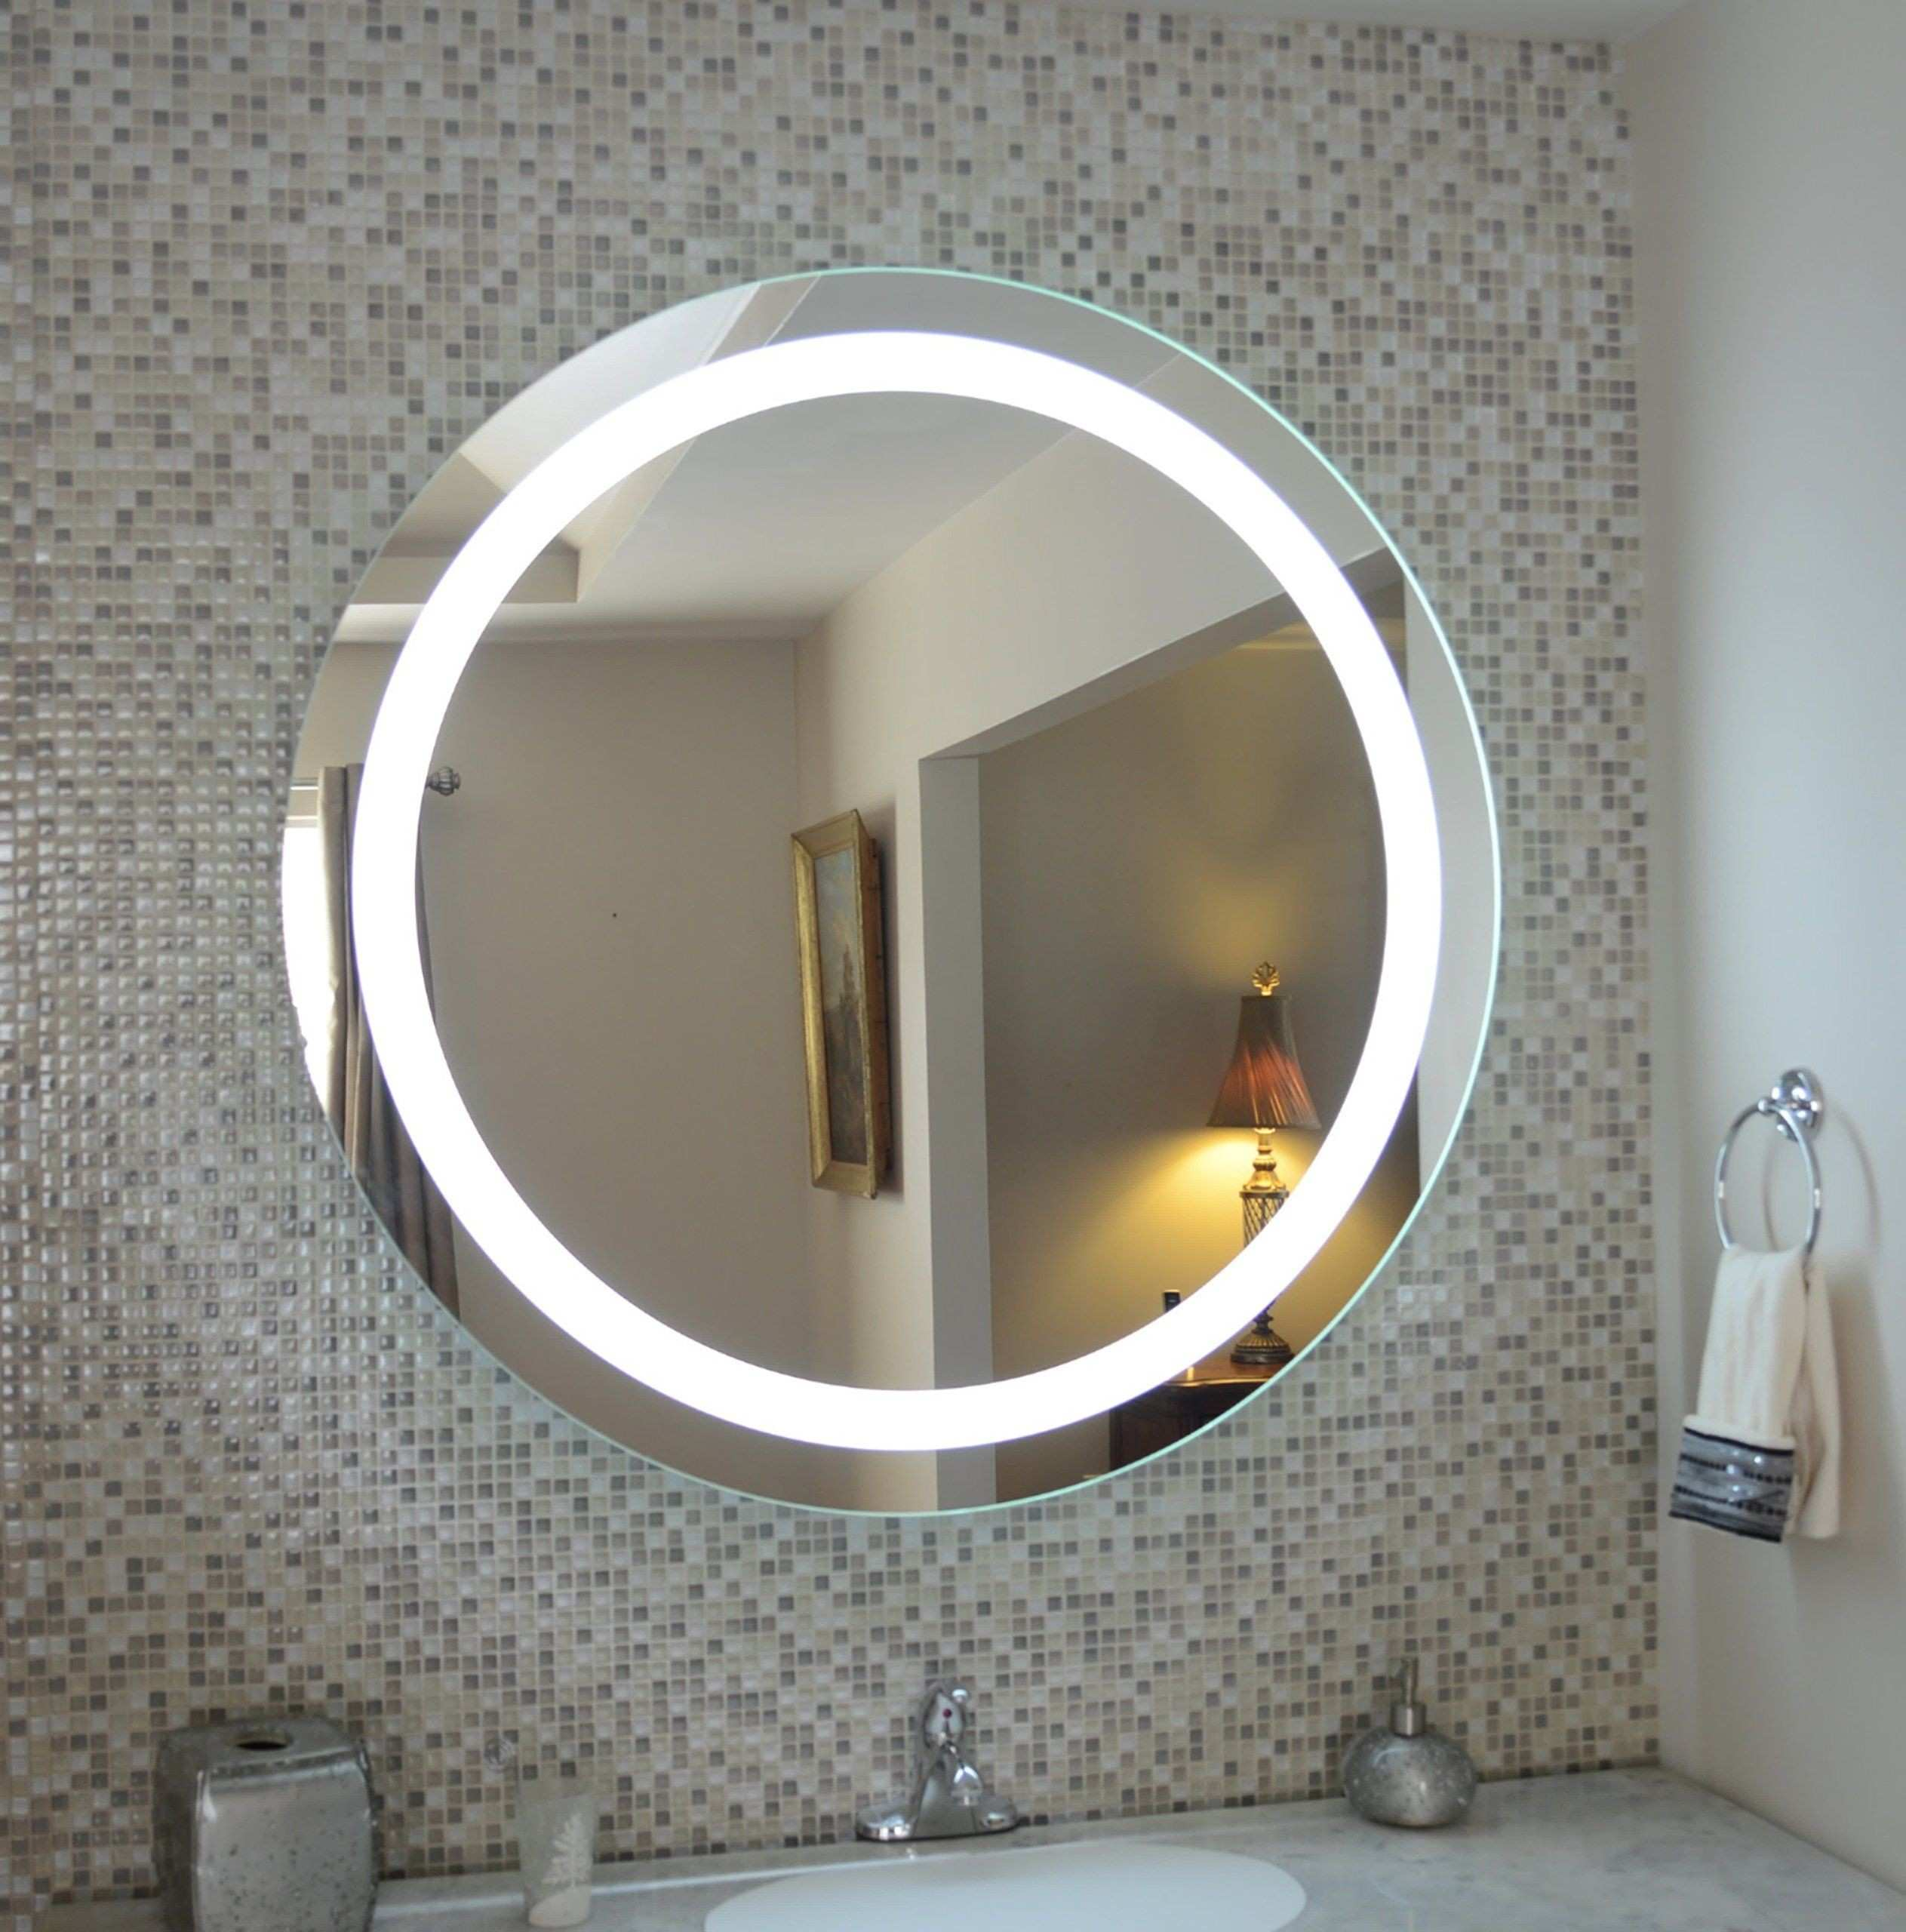 Wall Mounted Lighted Vanity Mirror LED MAM1D40 mercial Grade 40